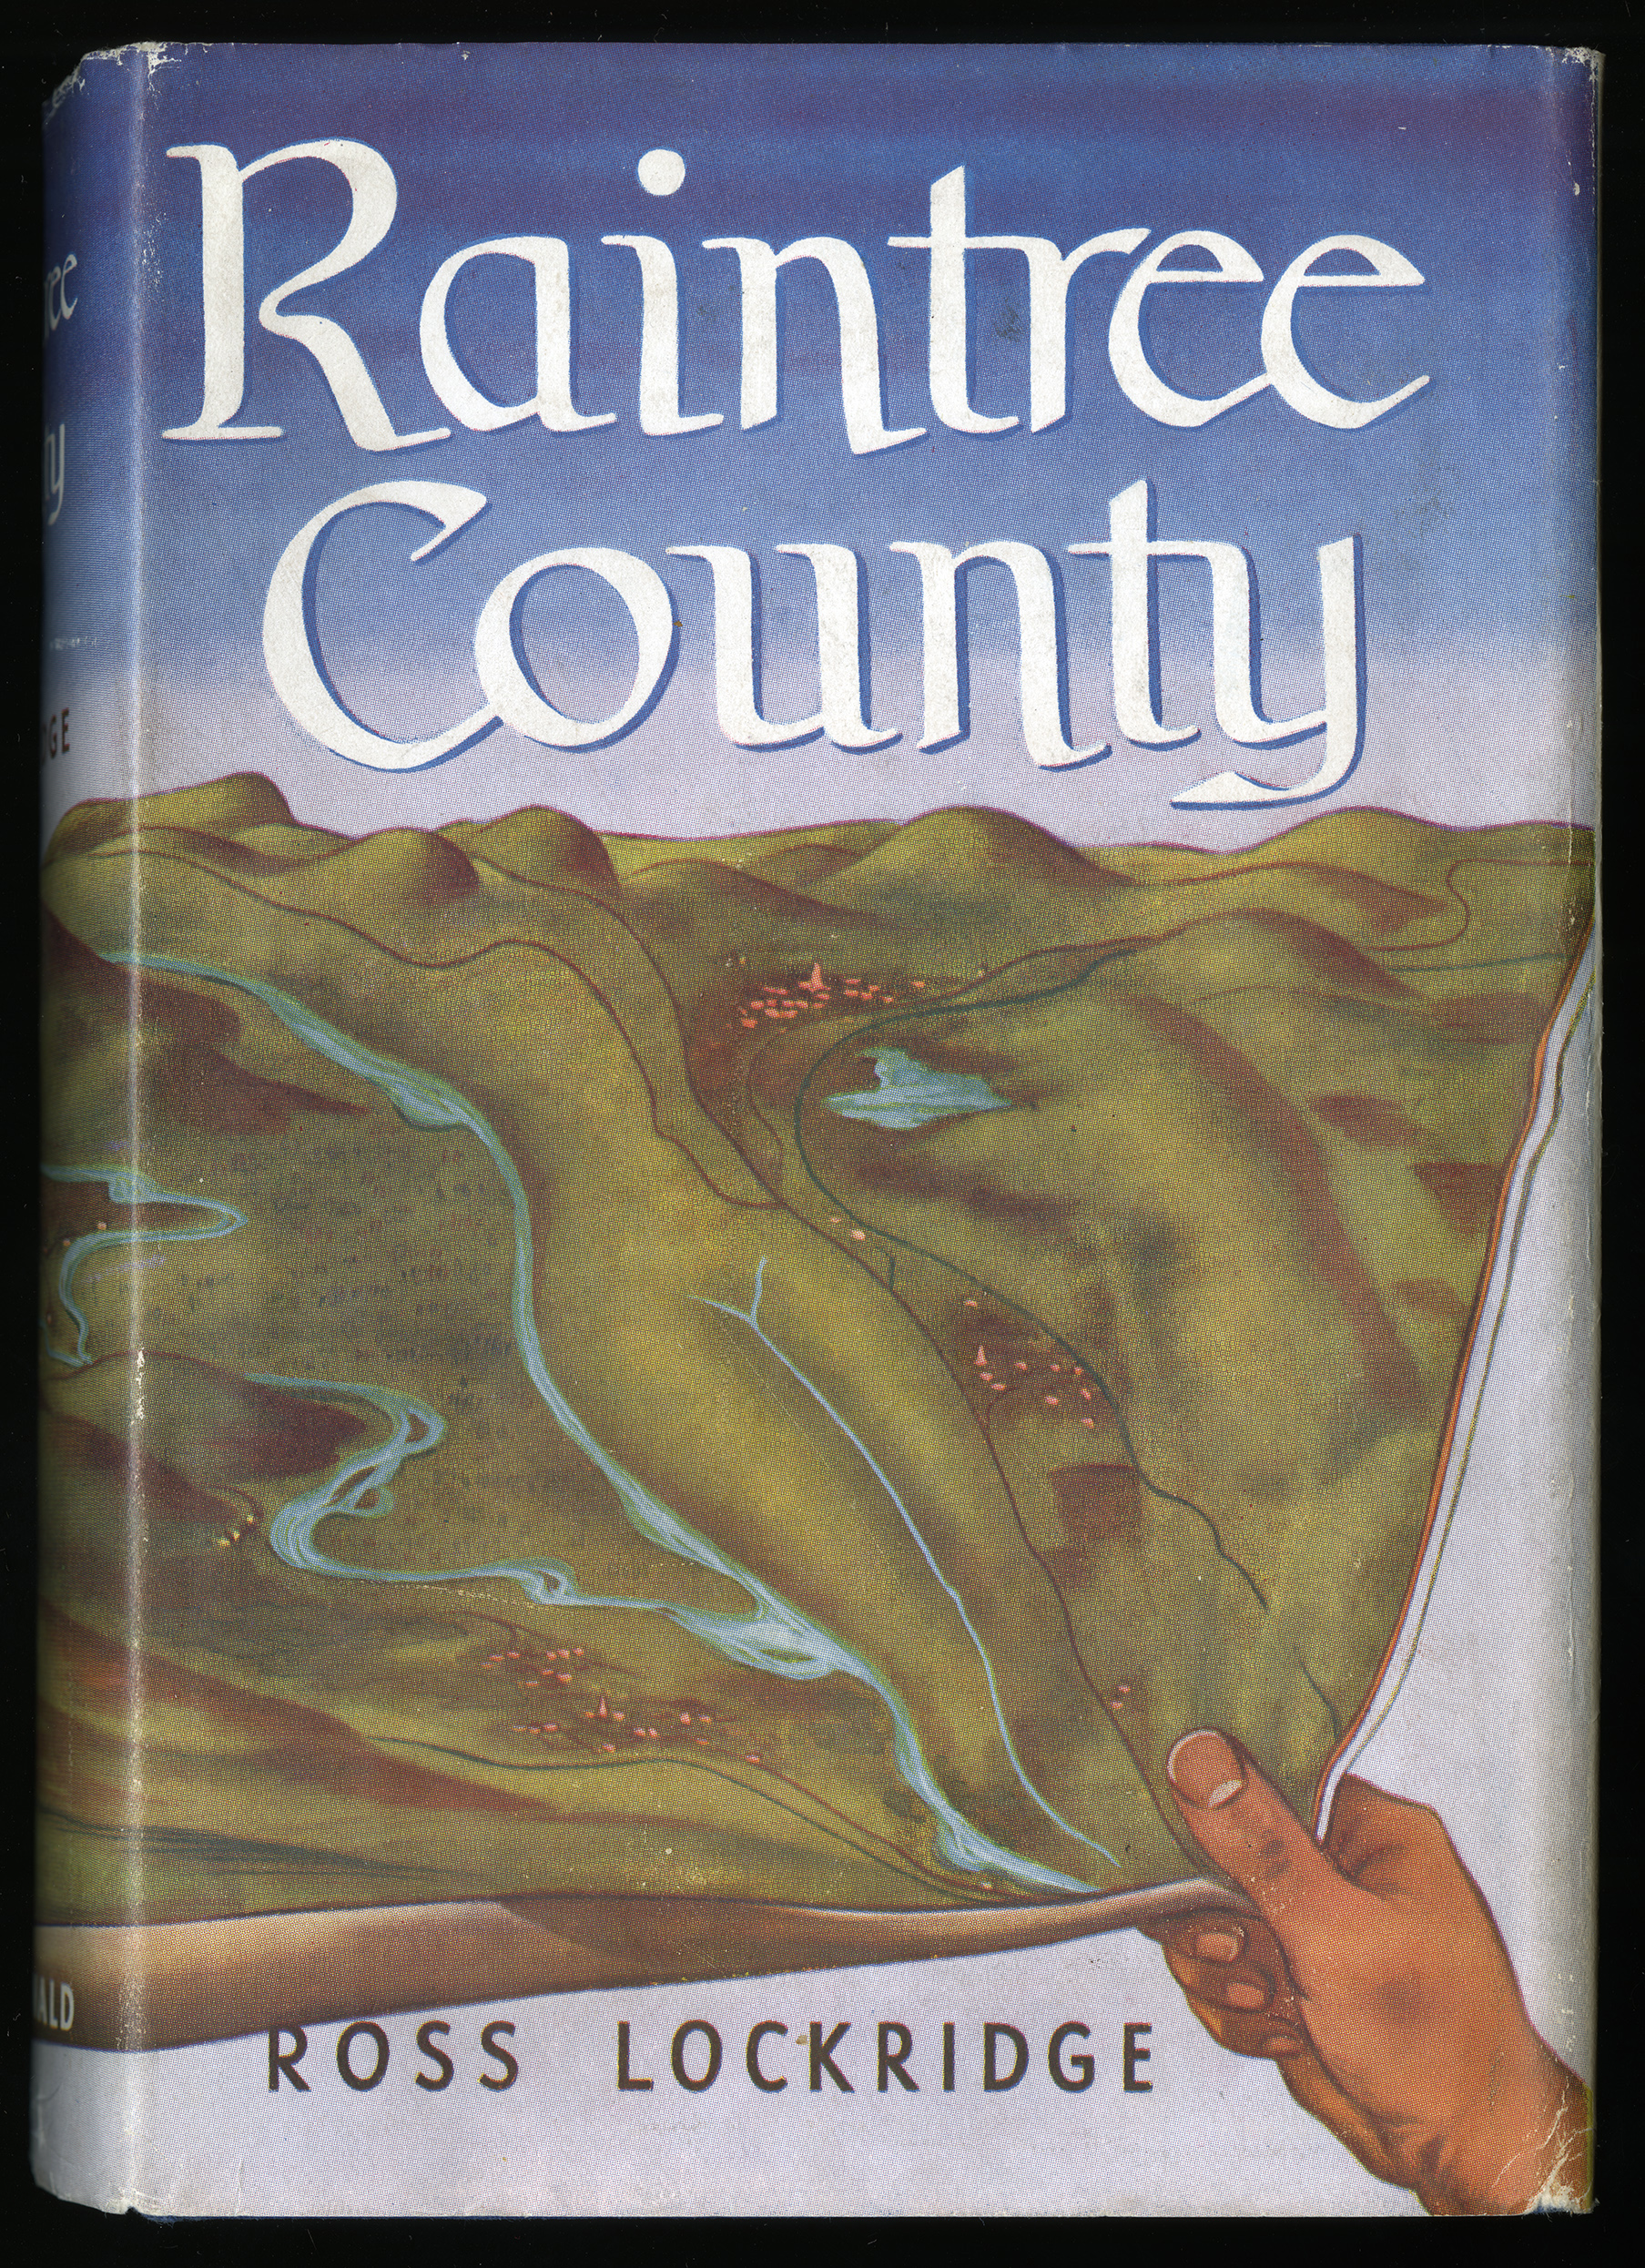 The cover for Ross Lockridge Jr.'s Raintree County